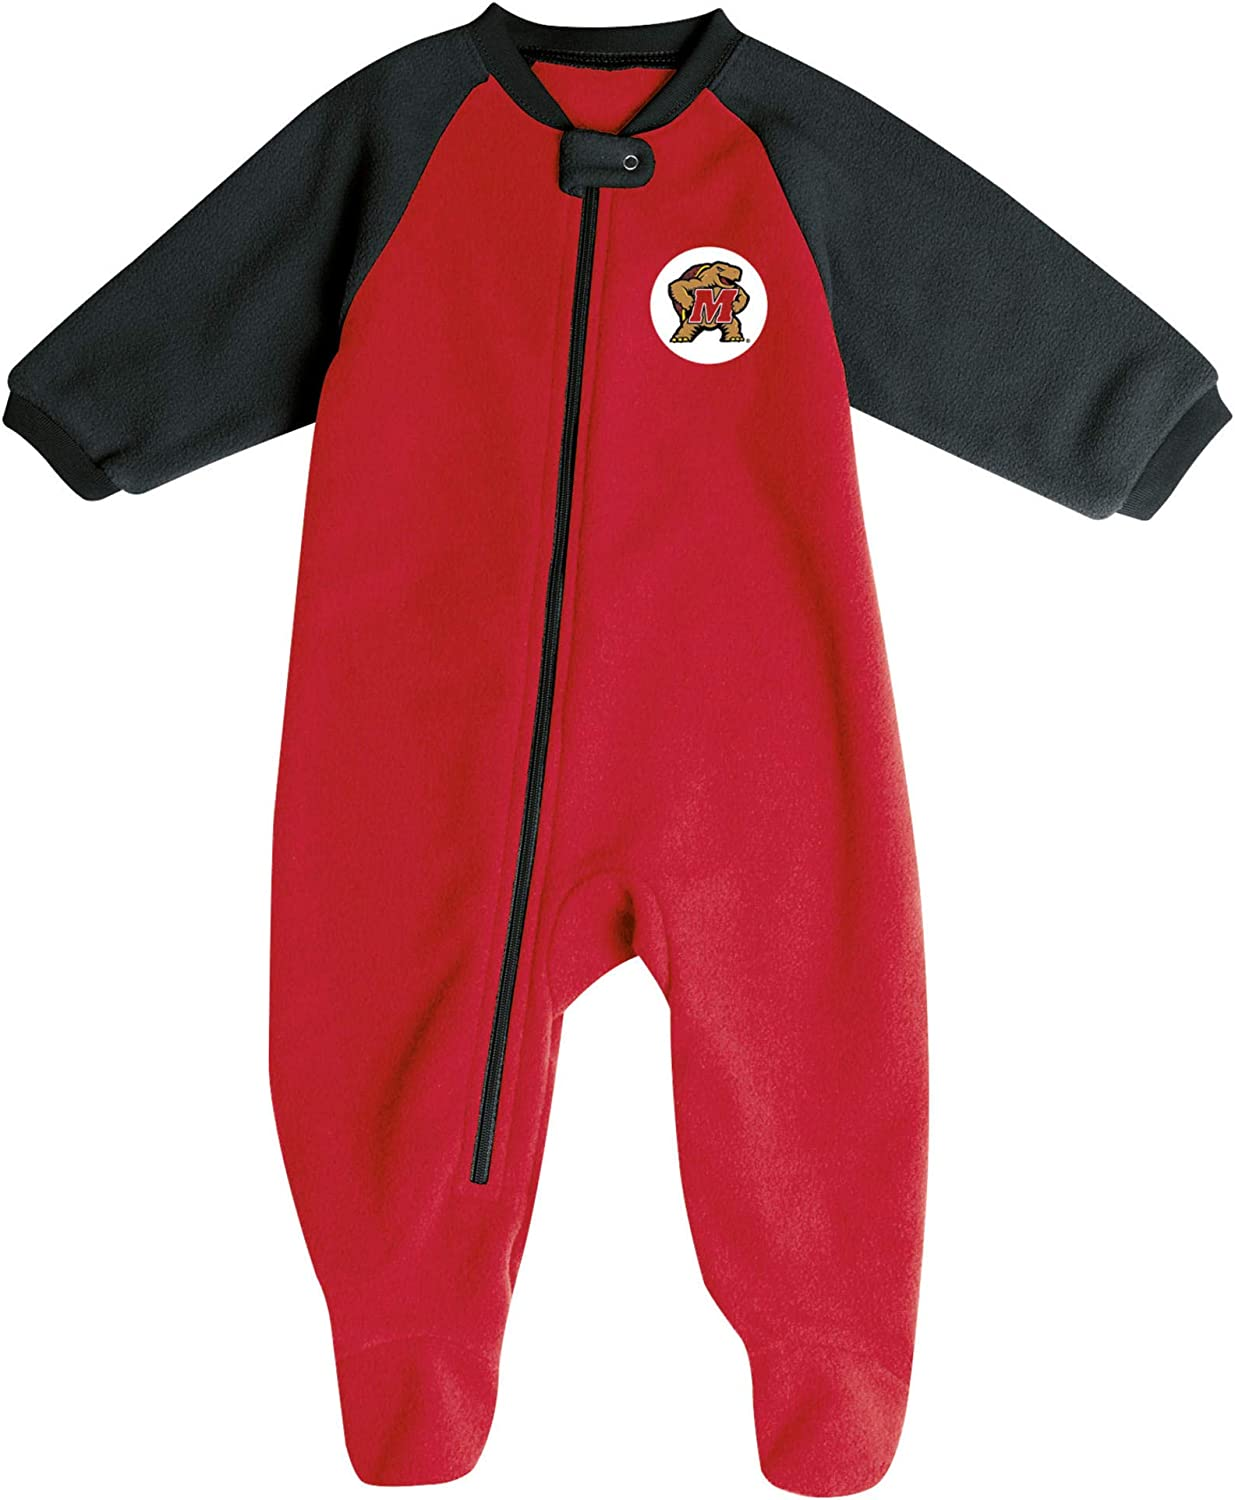 Pro Edge Infants NCAA Fleece Blanket Sleeper Footed Pajamas Romper